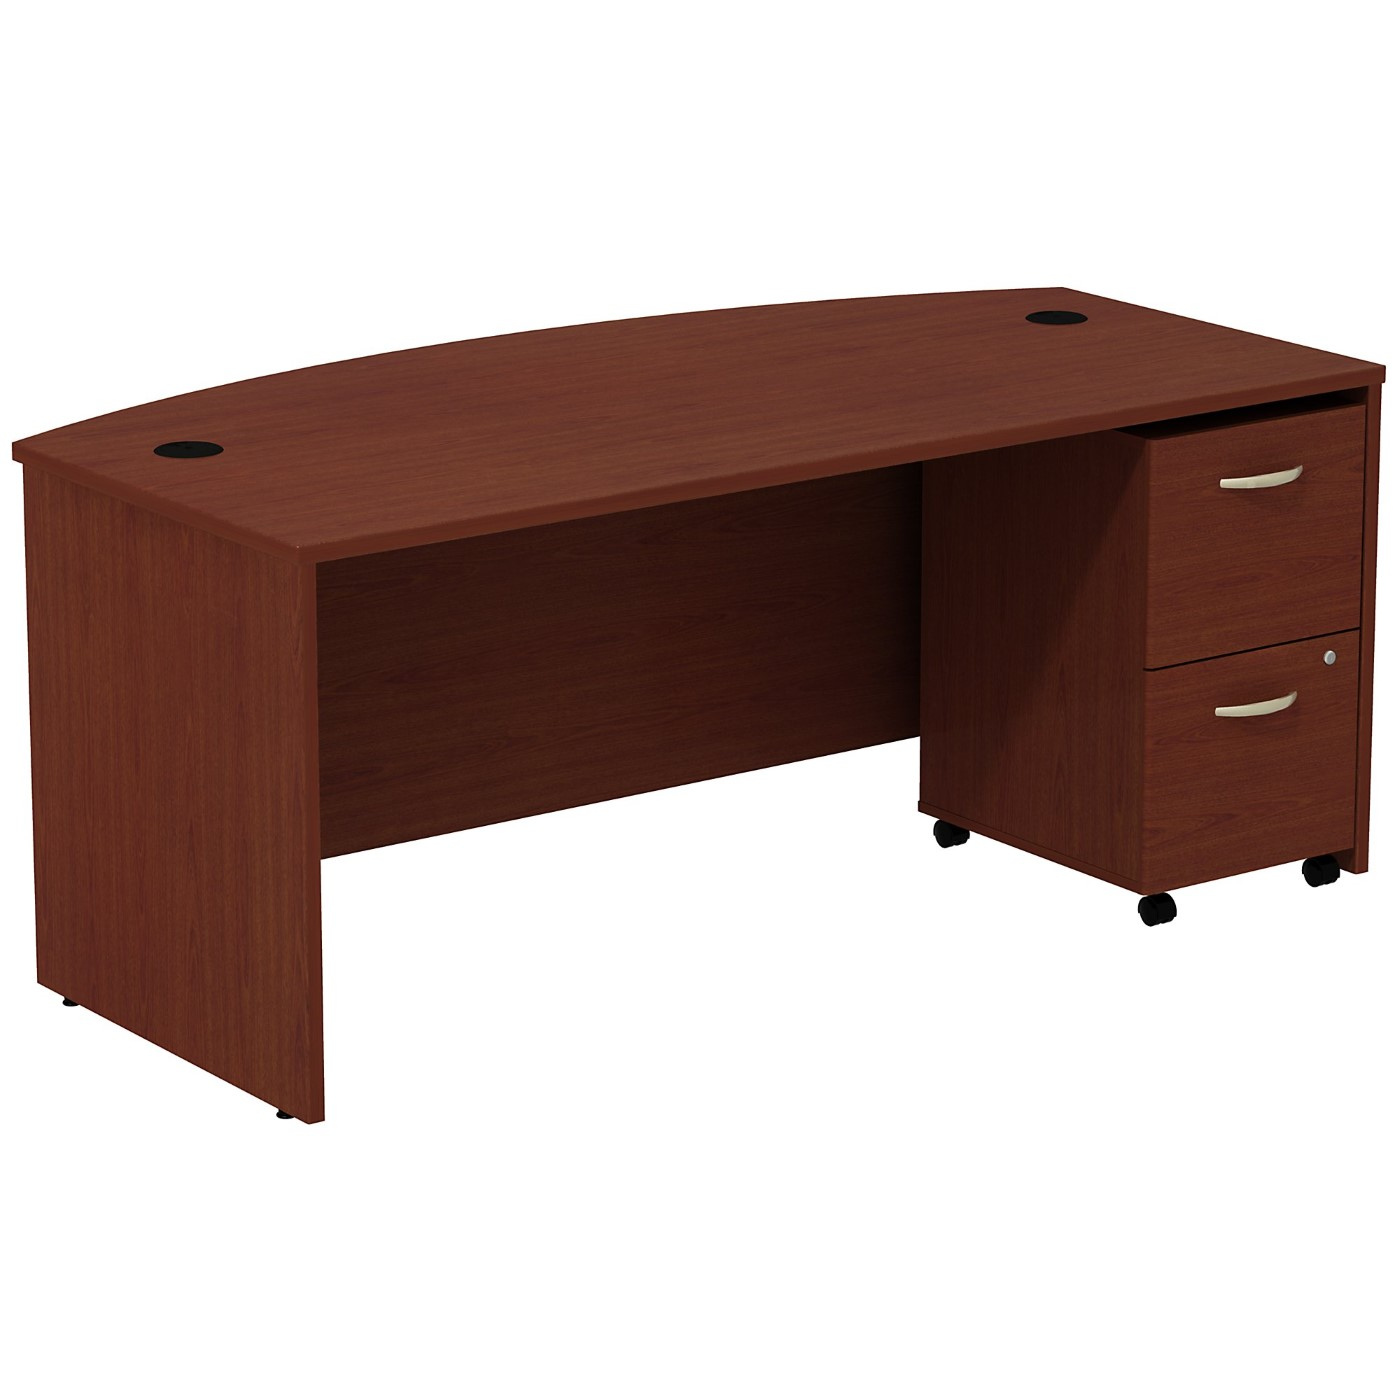 BUSH BUSINESS FURNITURE SERIES C BOW FRONT DESK WITH 2 DRAWER MOBILE PEDESTAL. FREE SHIPPING